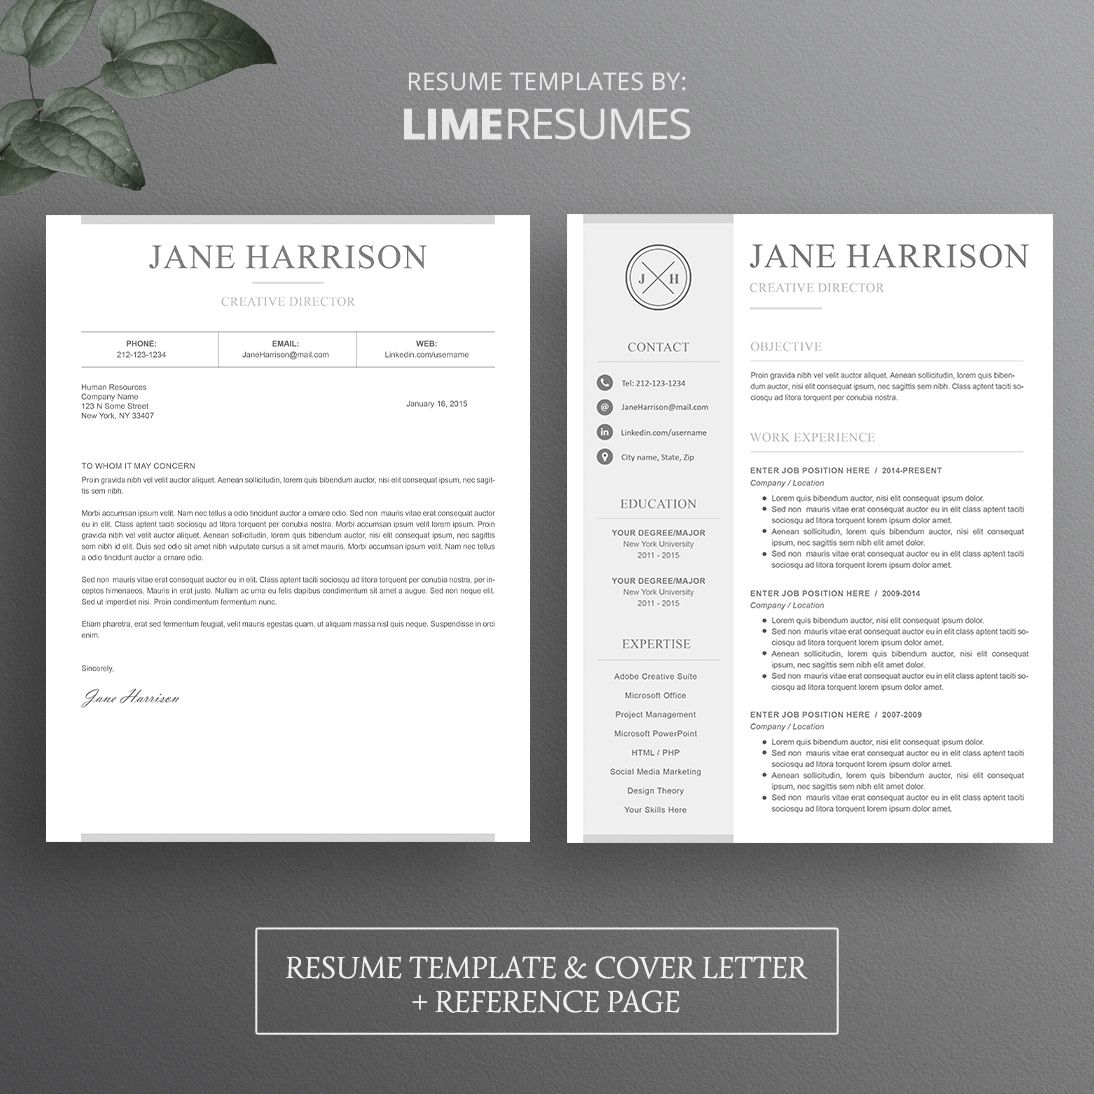 Resume Template 40 Microsoft word resume template, Cover